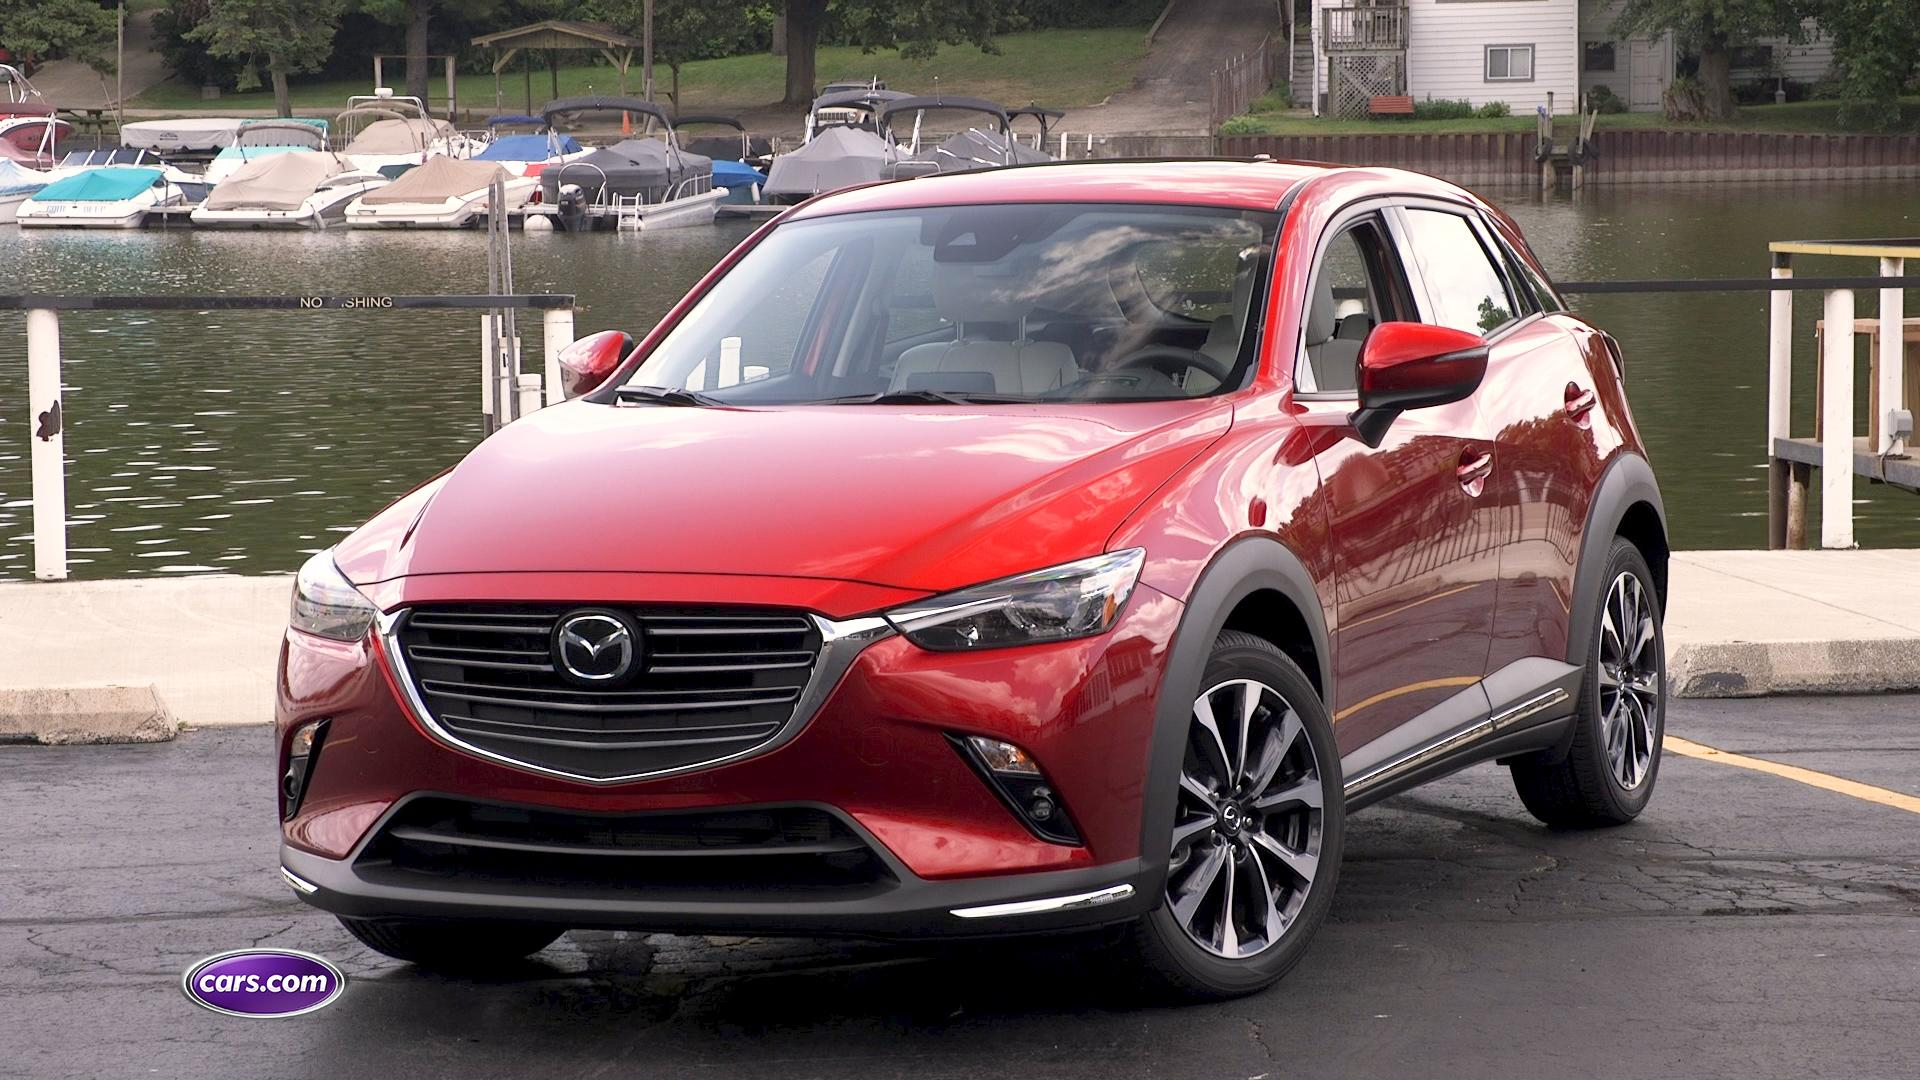 Video: 2019 Mazda CX-3: Review — Cars.com